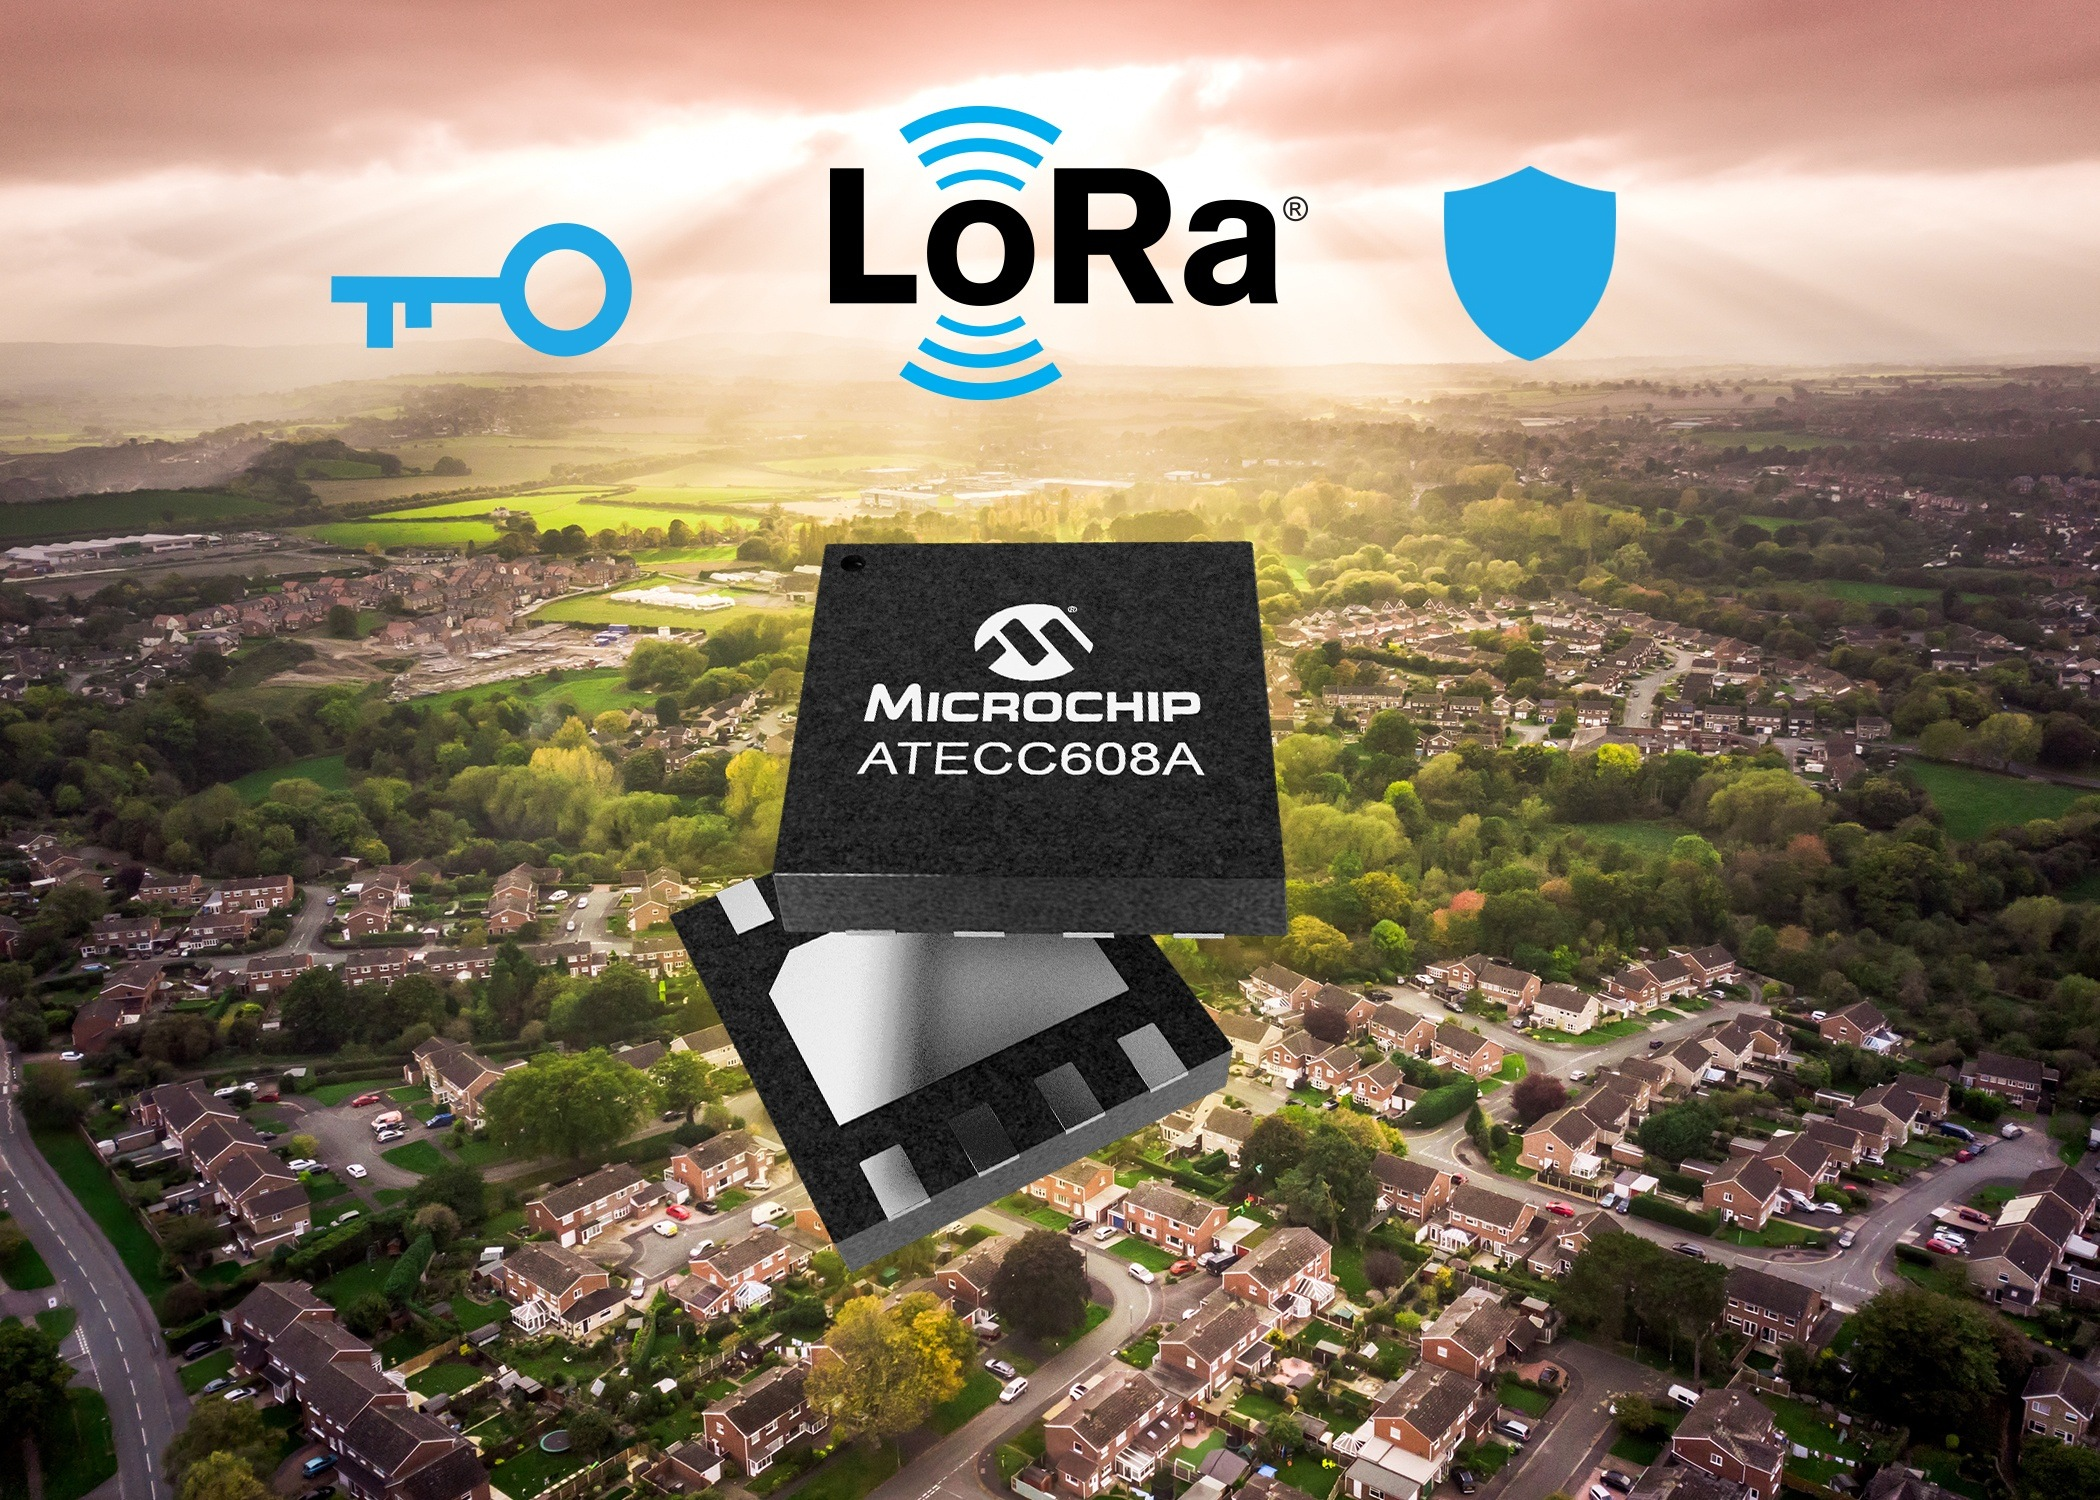 Industry's First End-to-End LoRa® Security Solution